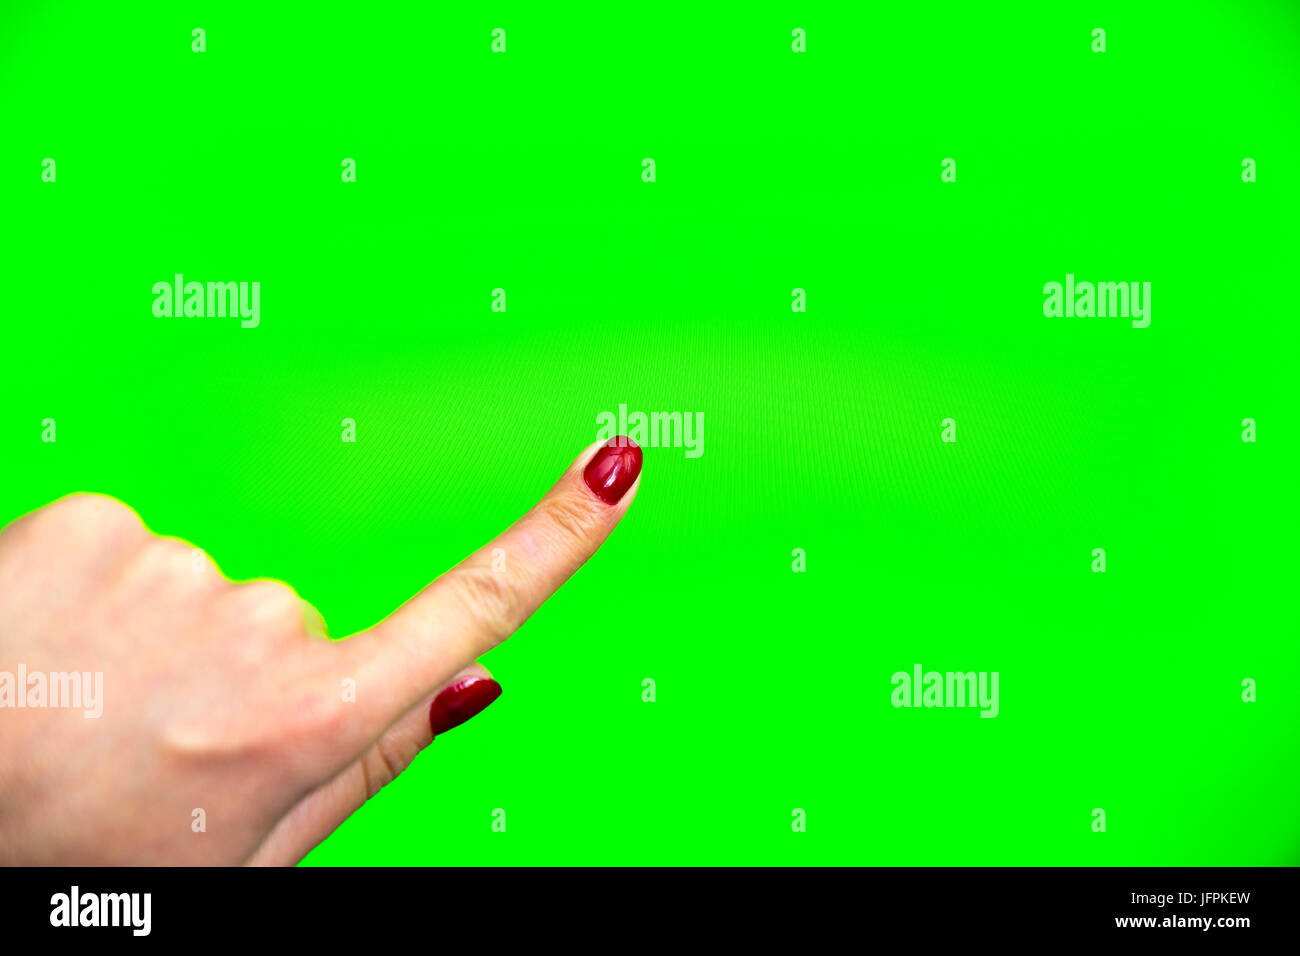 Young woman types and slides on a digital screen. Computer monitor with chroma key screen - green screen. Red nail - Stock Image